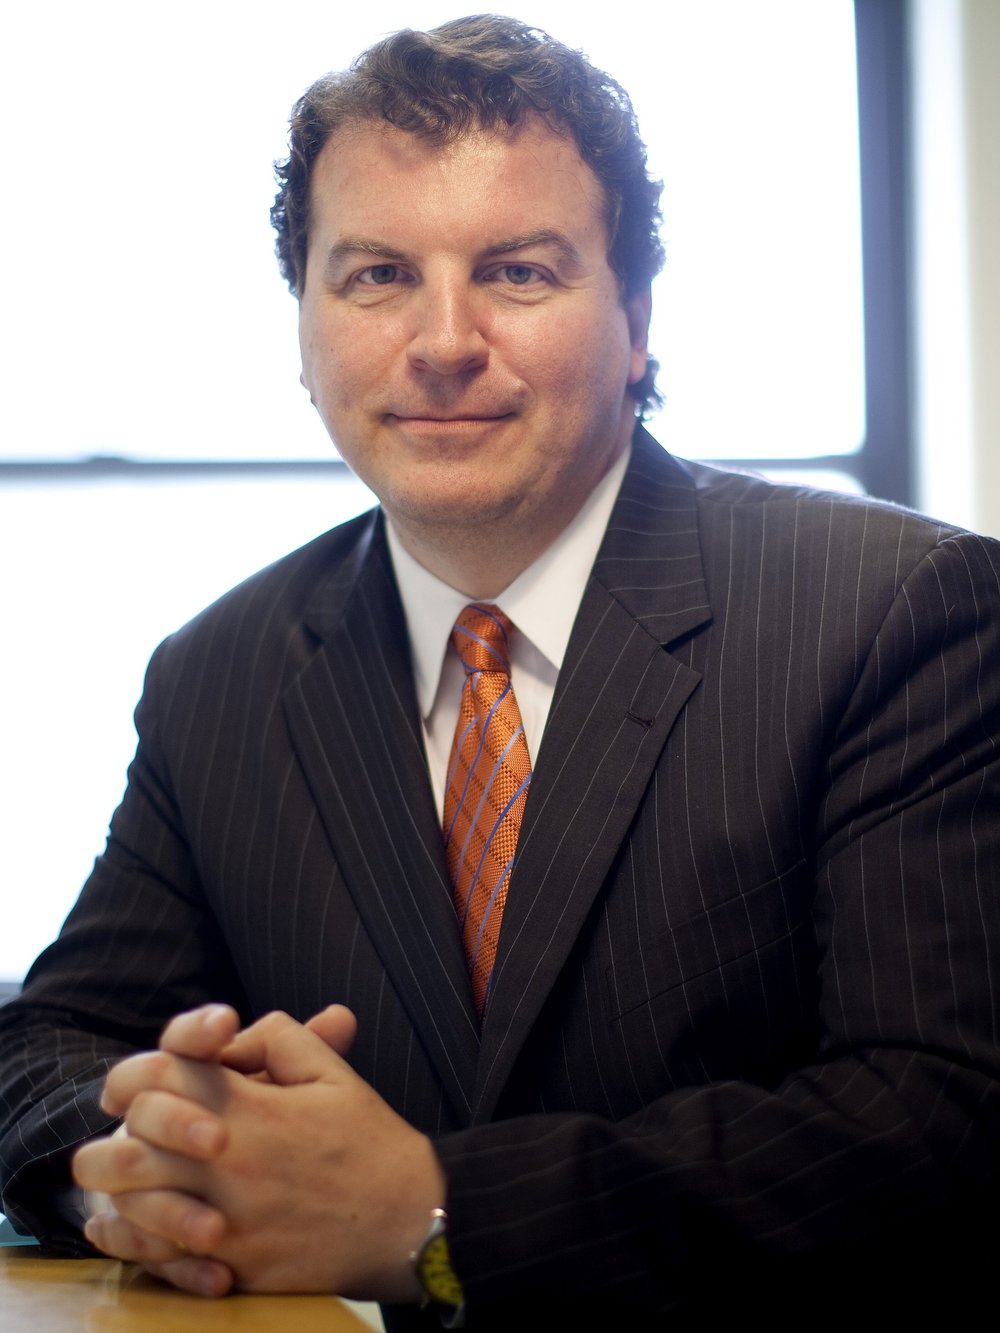 "Jonathan Miller - Jonathan Miller is President and CEO of Miller Samuel Inc., a real estate appraisal and consulting firm he co-founded in 1986. He is also co-founder of Miller Cicero, LLC, a commercial real estate valuation firm. He is an Appraiser ""A"" Member of the Real Estate Board of New York and the current President of RAC, a national organization of appraisers. Mr. Miller is the author of a series of market reports for Douglas Elliman Real Estate, which are relied on by the media, financial institutions and government agencies including the Federal Reserve and IRS."